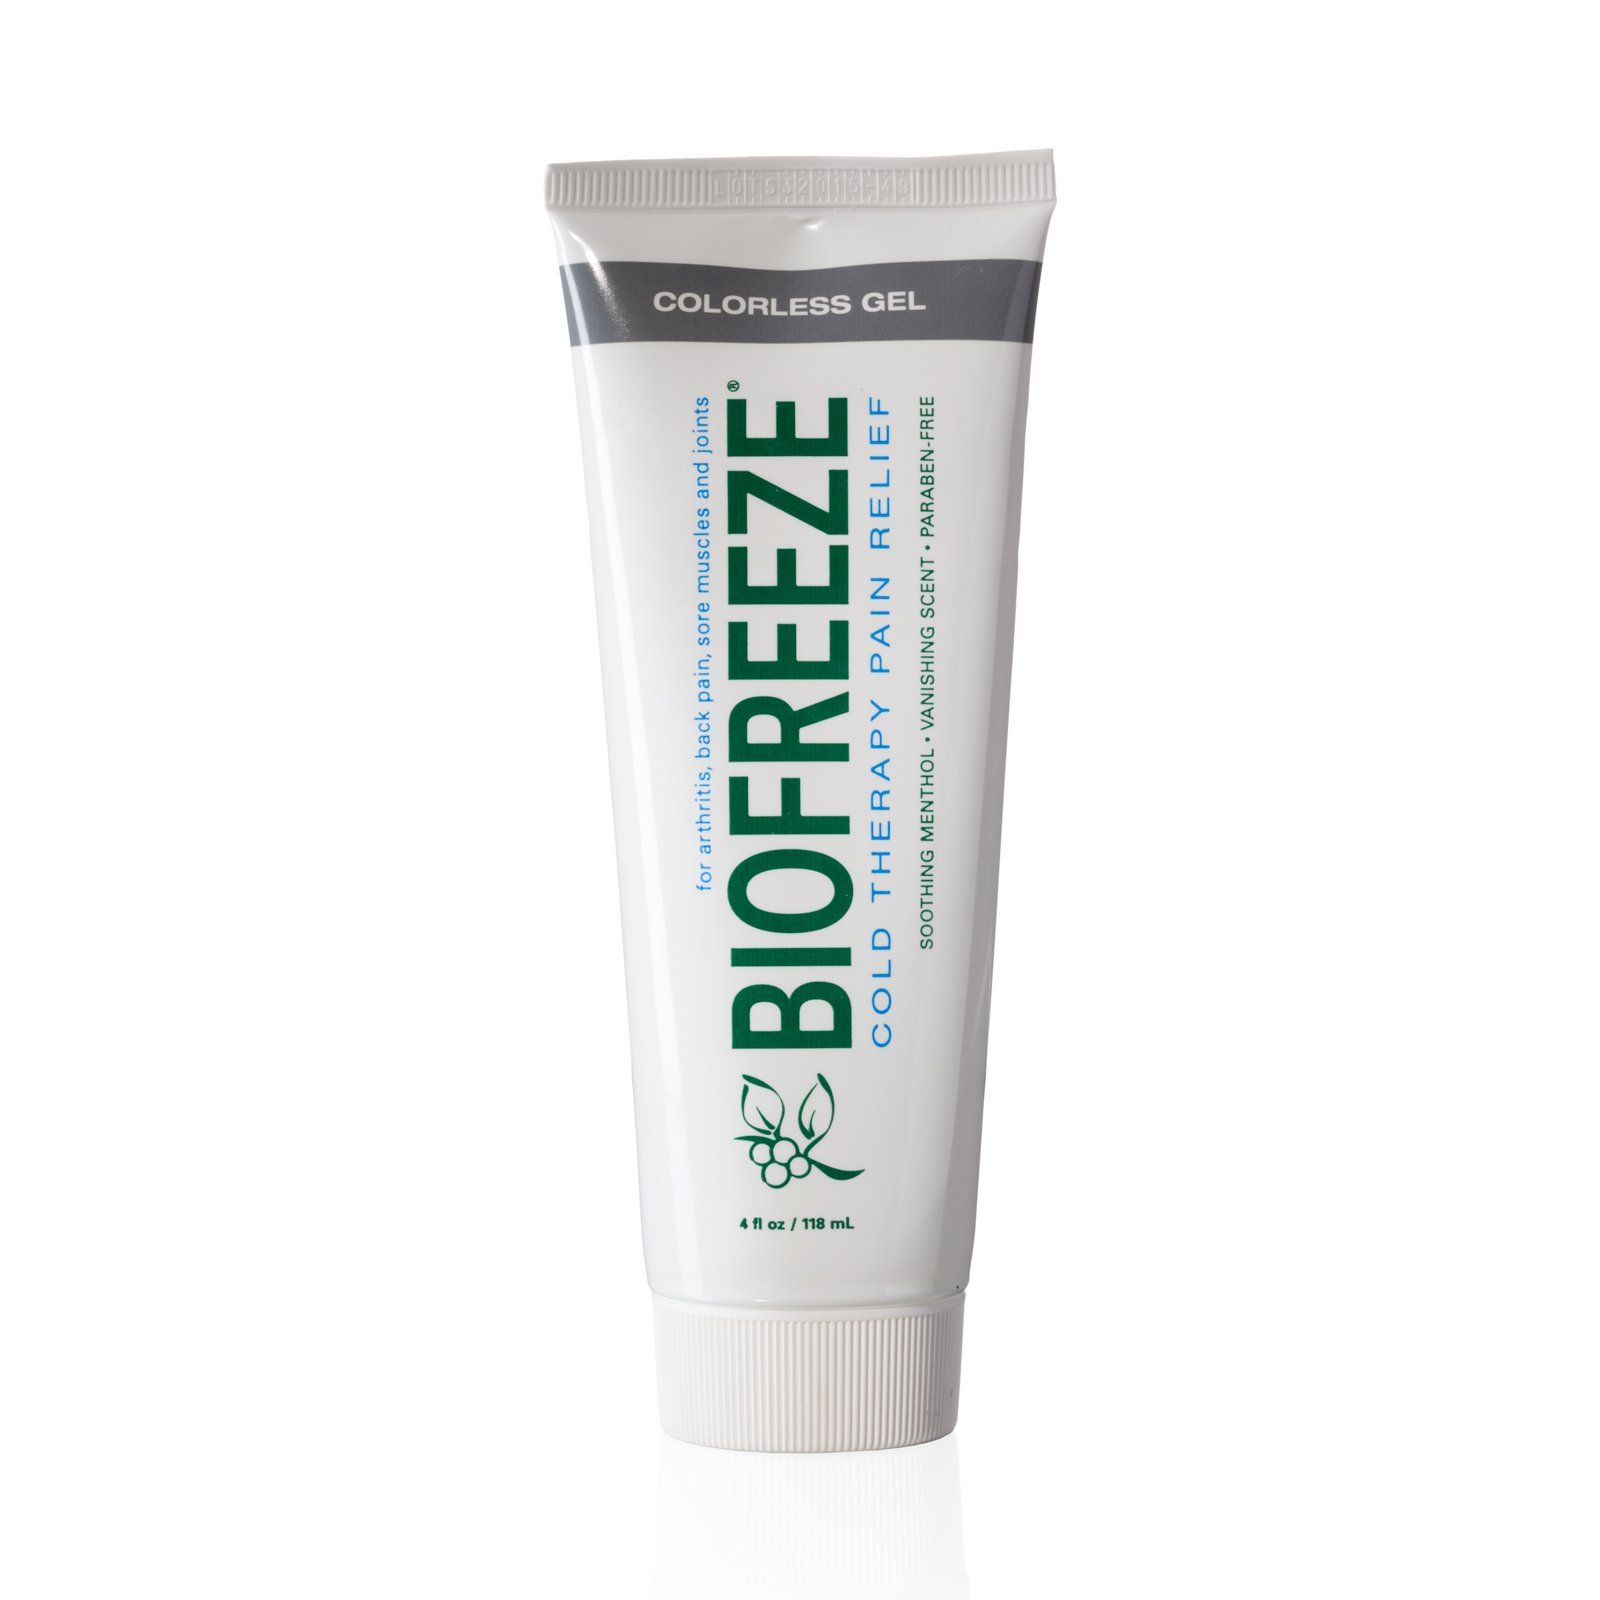 Biofreeze Pain Relief Gel, 4 oz. Tube, Cooling Topical Analgesic for Arthritis, Fast Acting and Long Lasting Pain Reliever Cream for Muscle Pain, Joint Pain, Back Pain, Colorless Formula, 4% Menthol